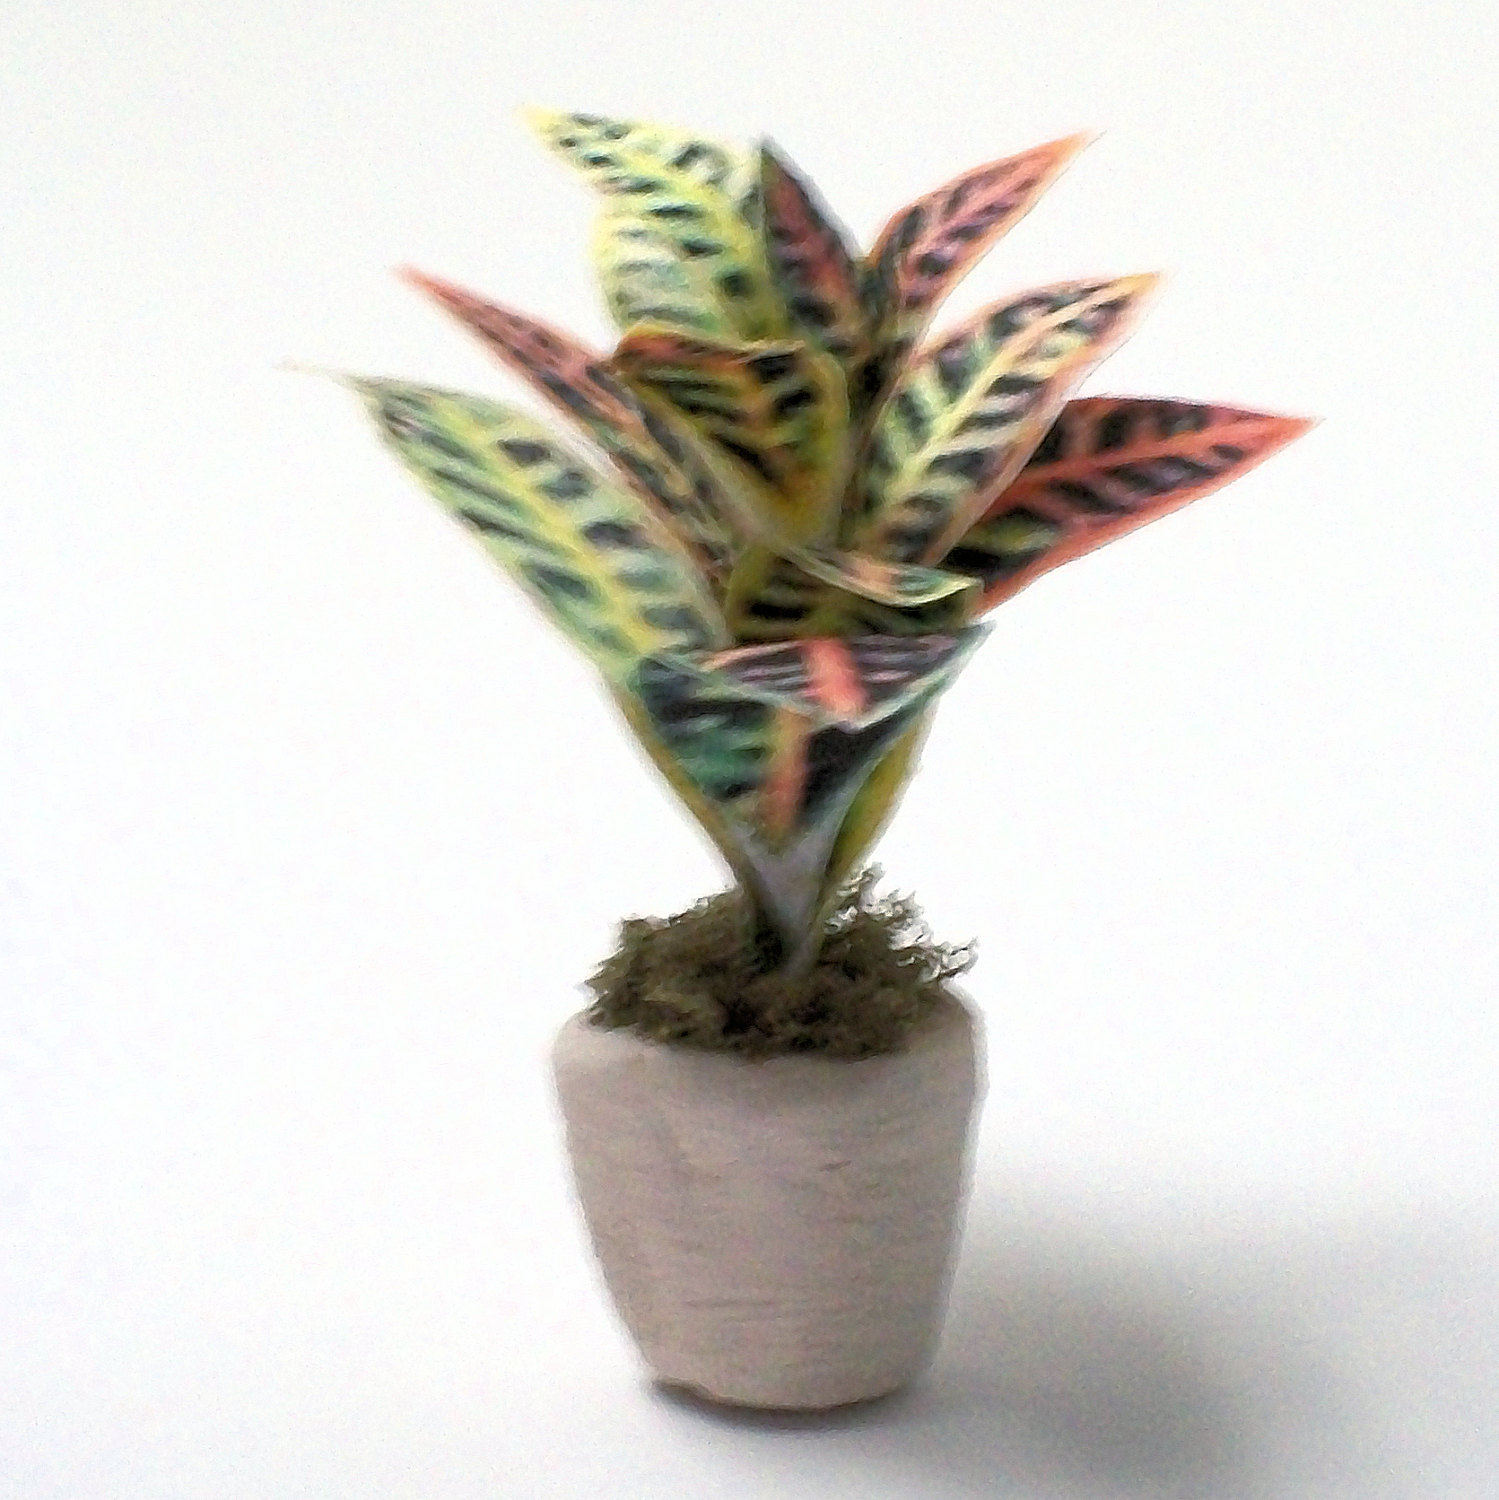 Miniature Verigated Croton Potted Plant In An Off White Clay